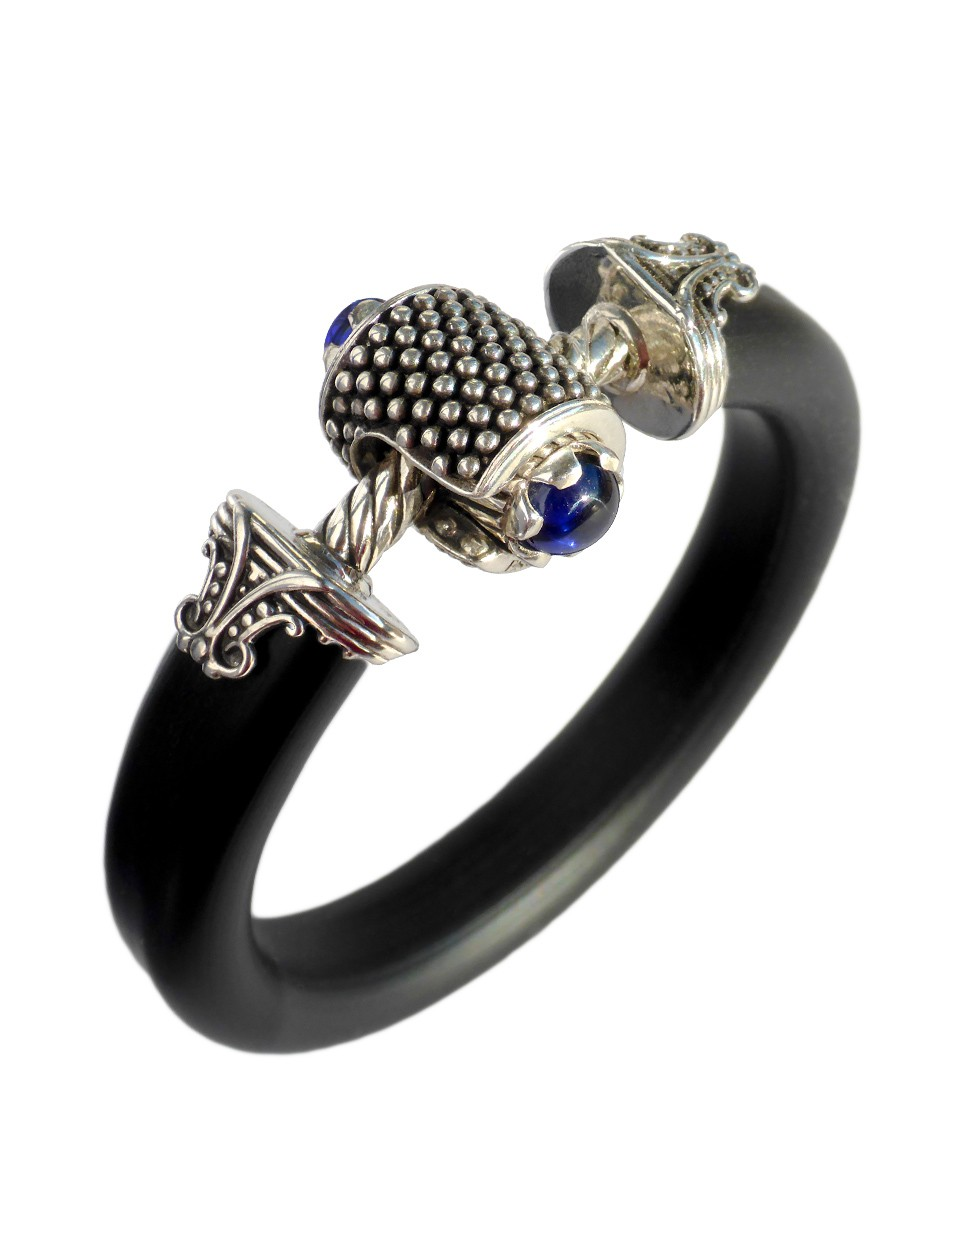 Jockring Omen Imperial Blue Spinel Cabochon In Solid Silver Precious Jewelry